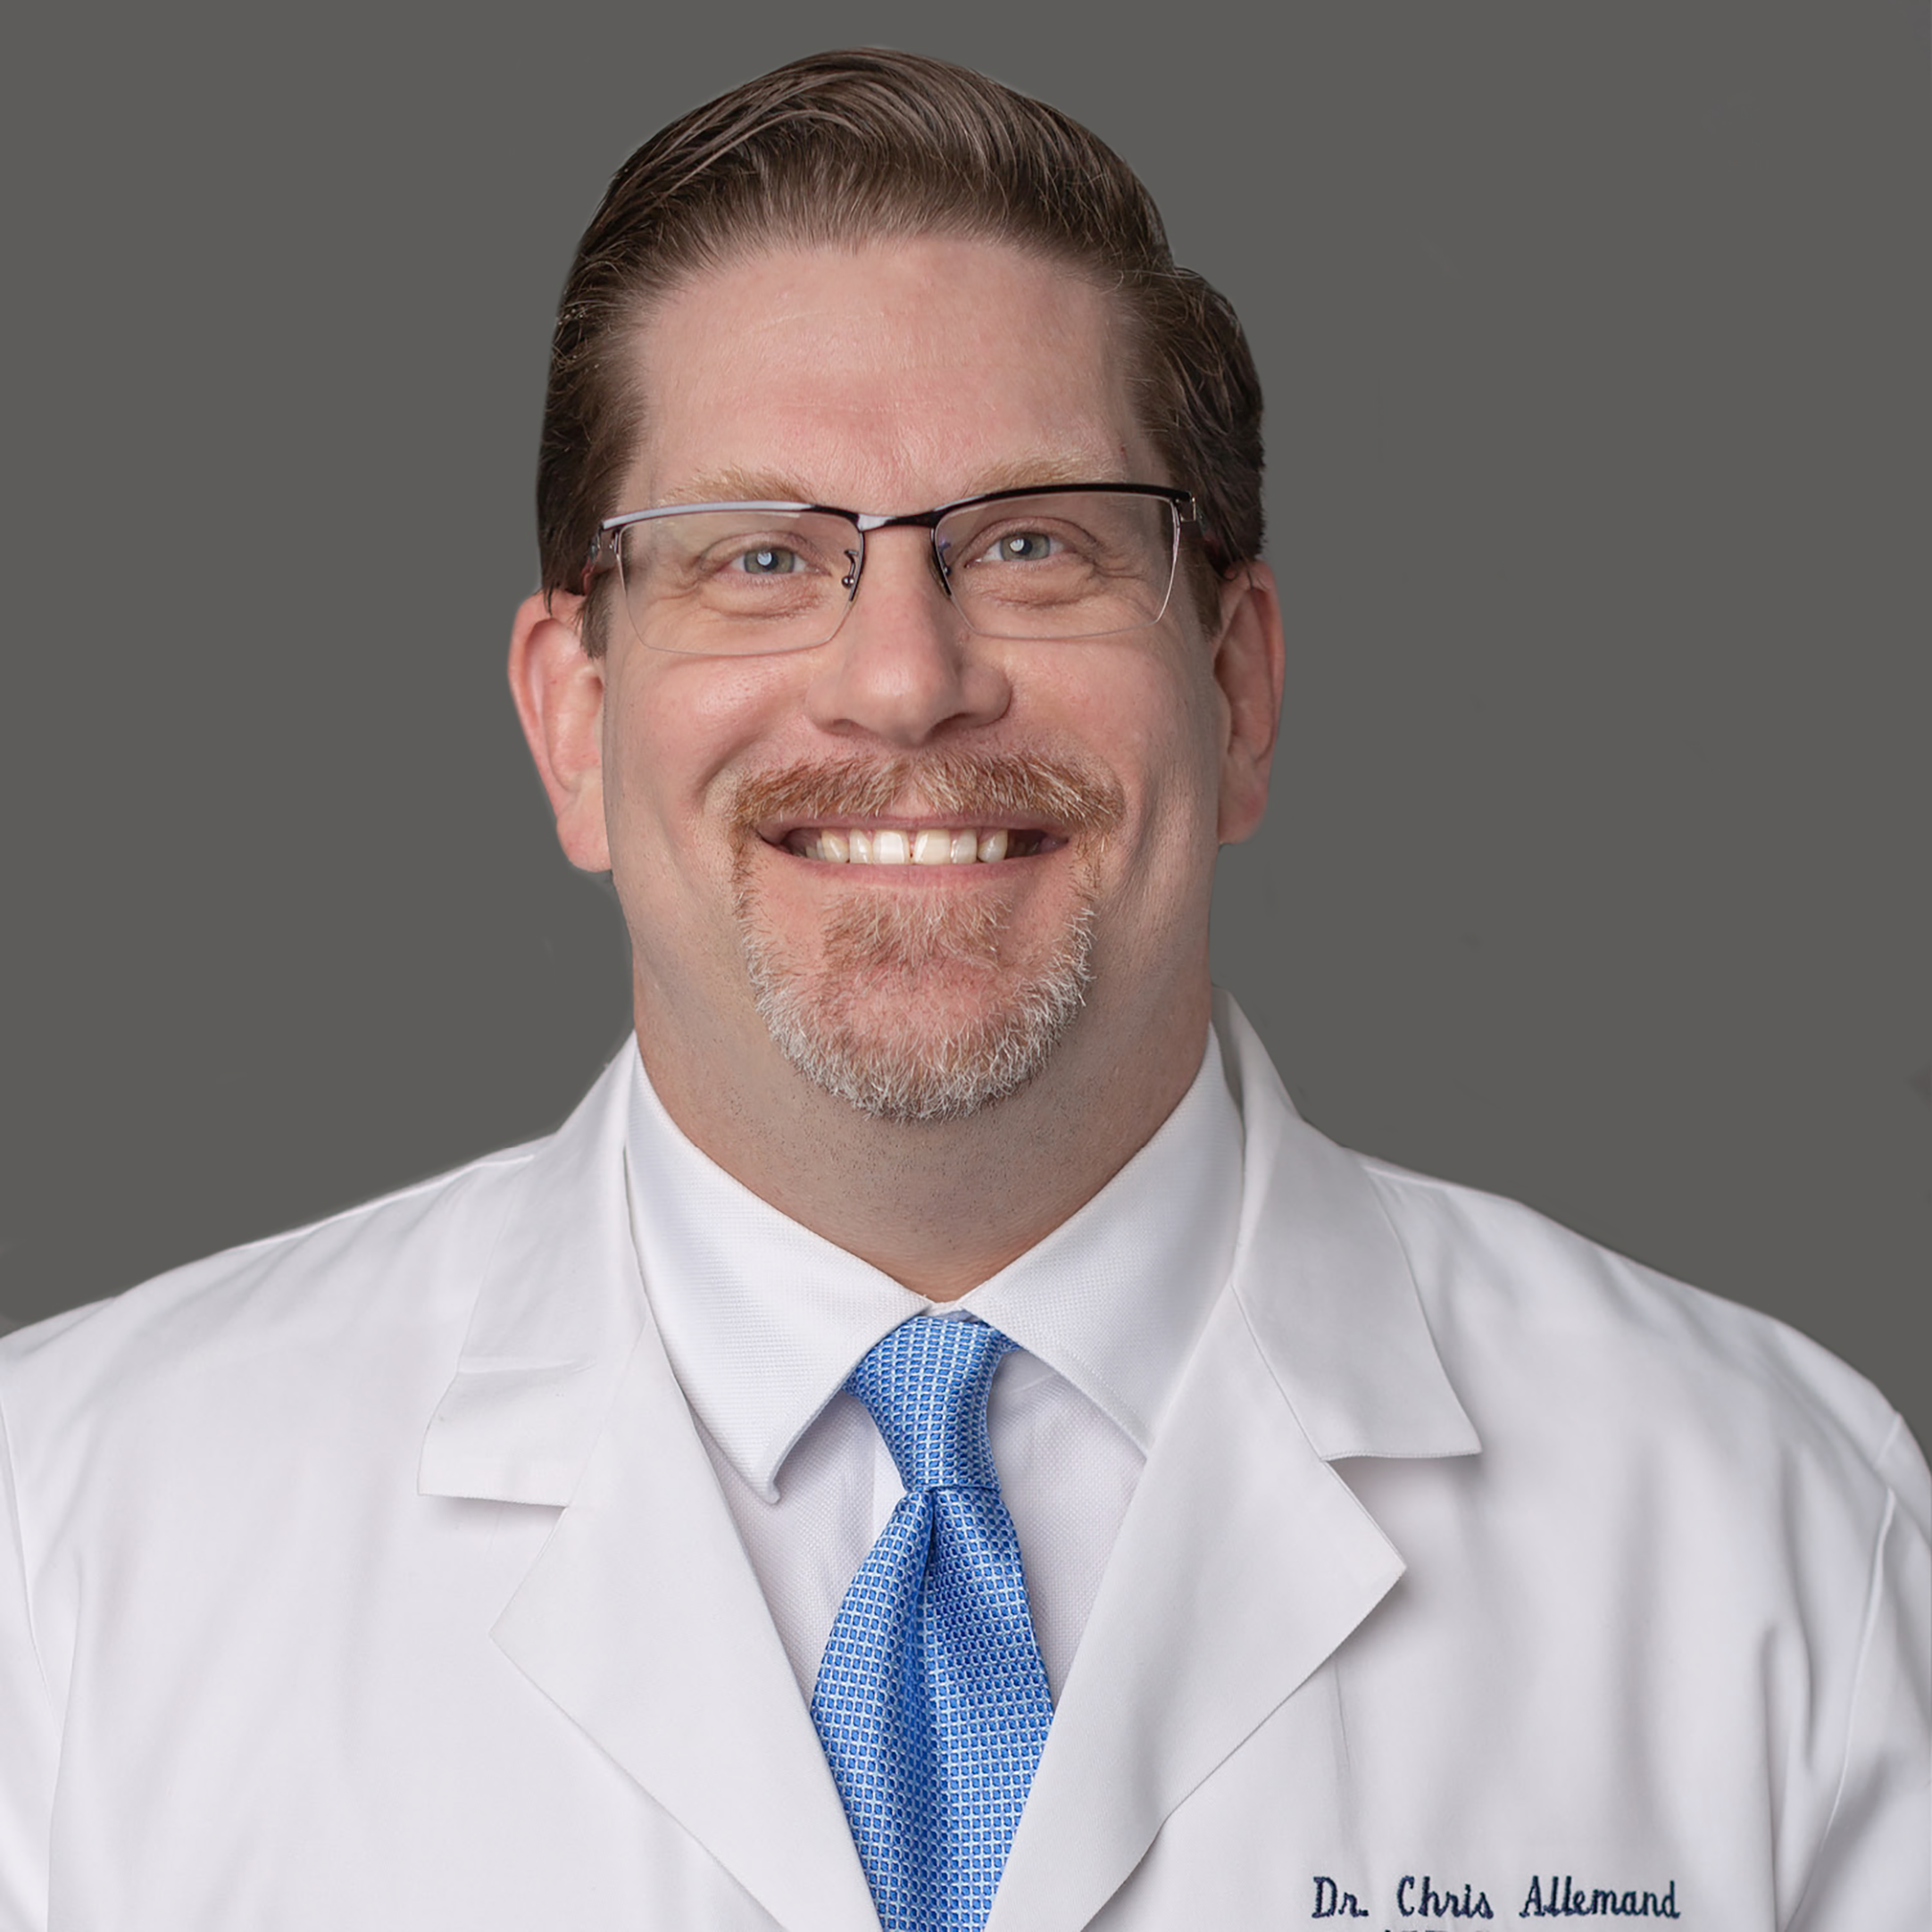 Michael C. Allemand, MD